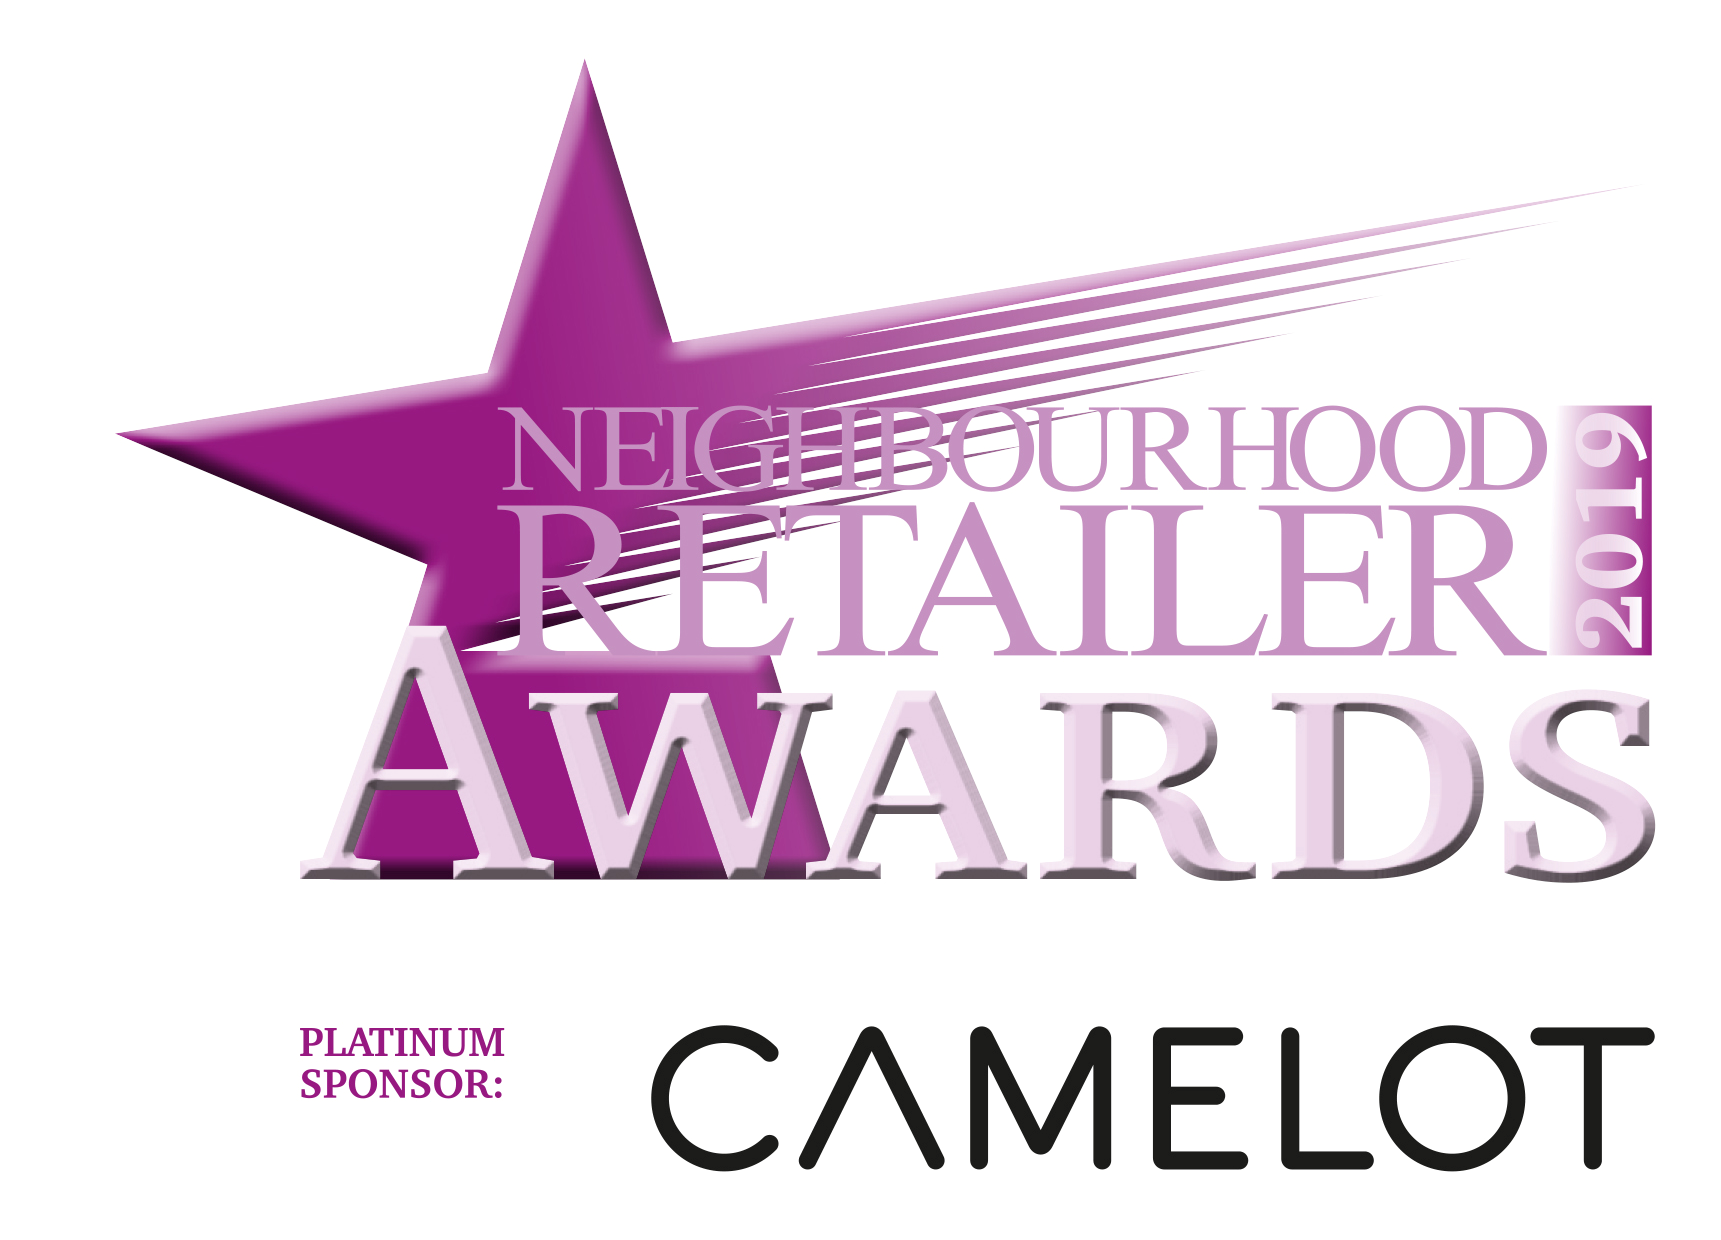 Camelot Platinum Sponsor Neighbourhood Retailer Awards